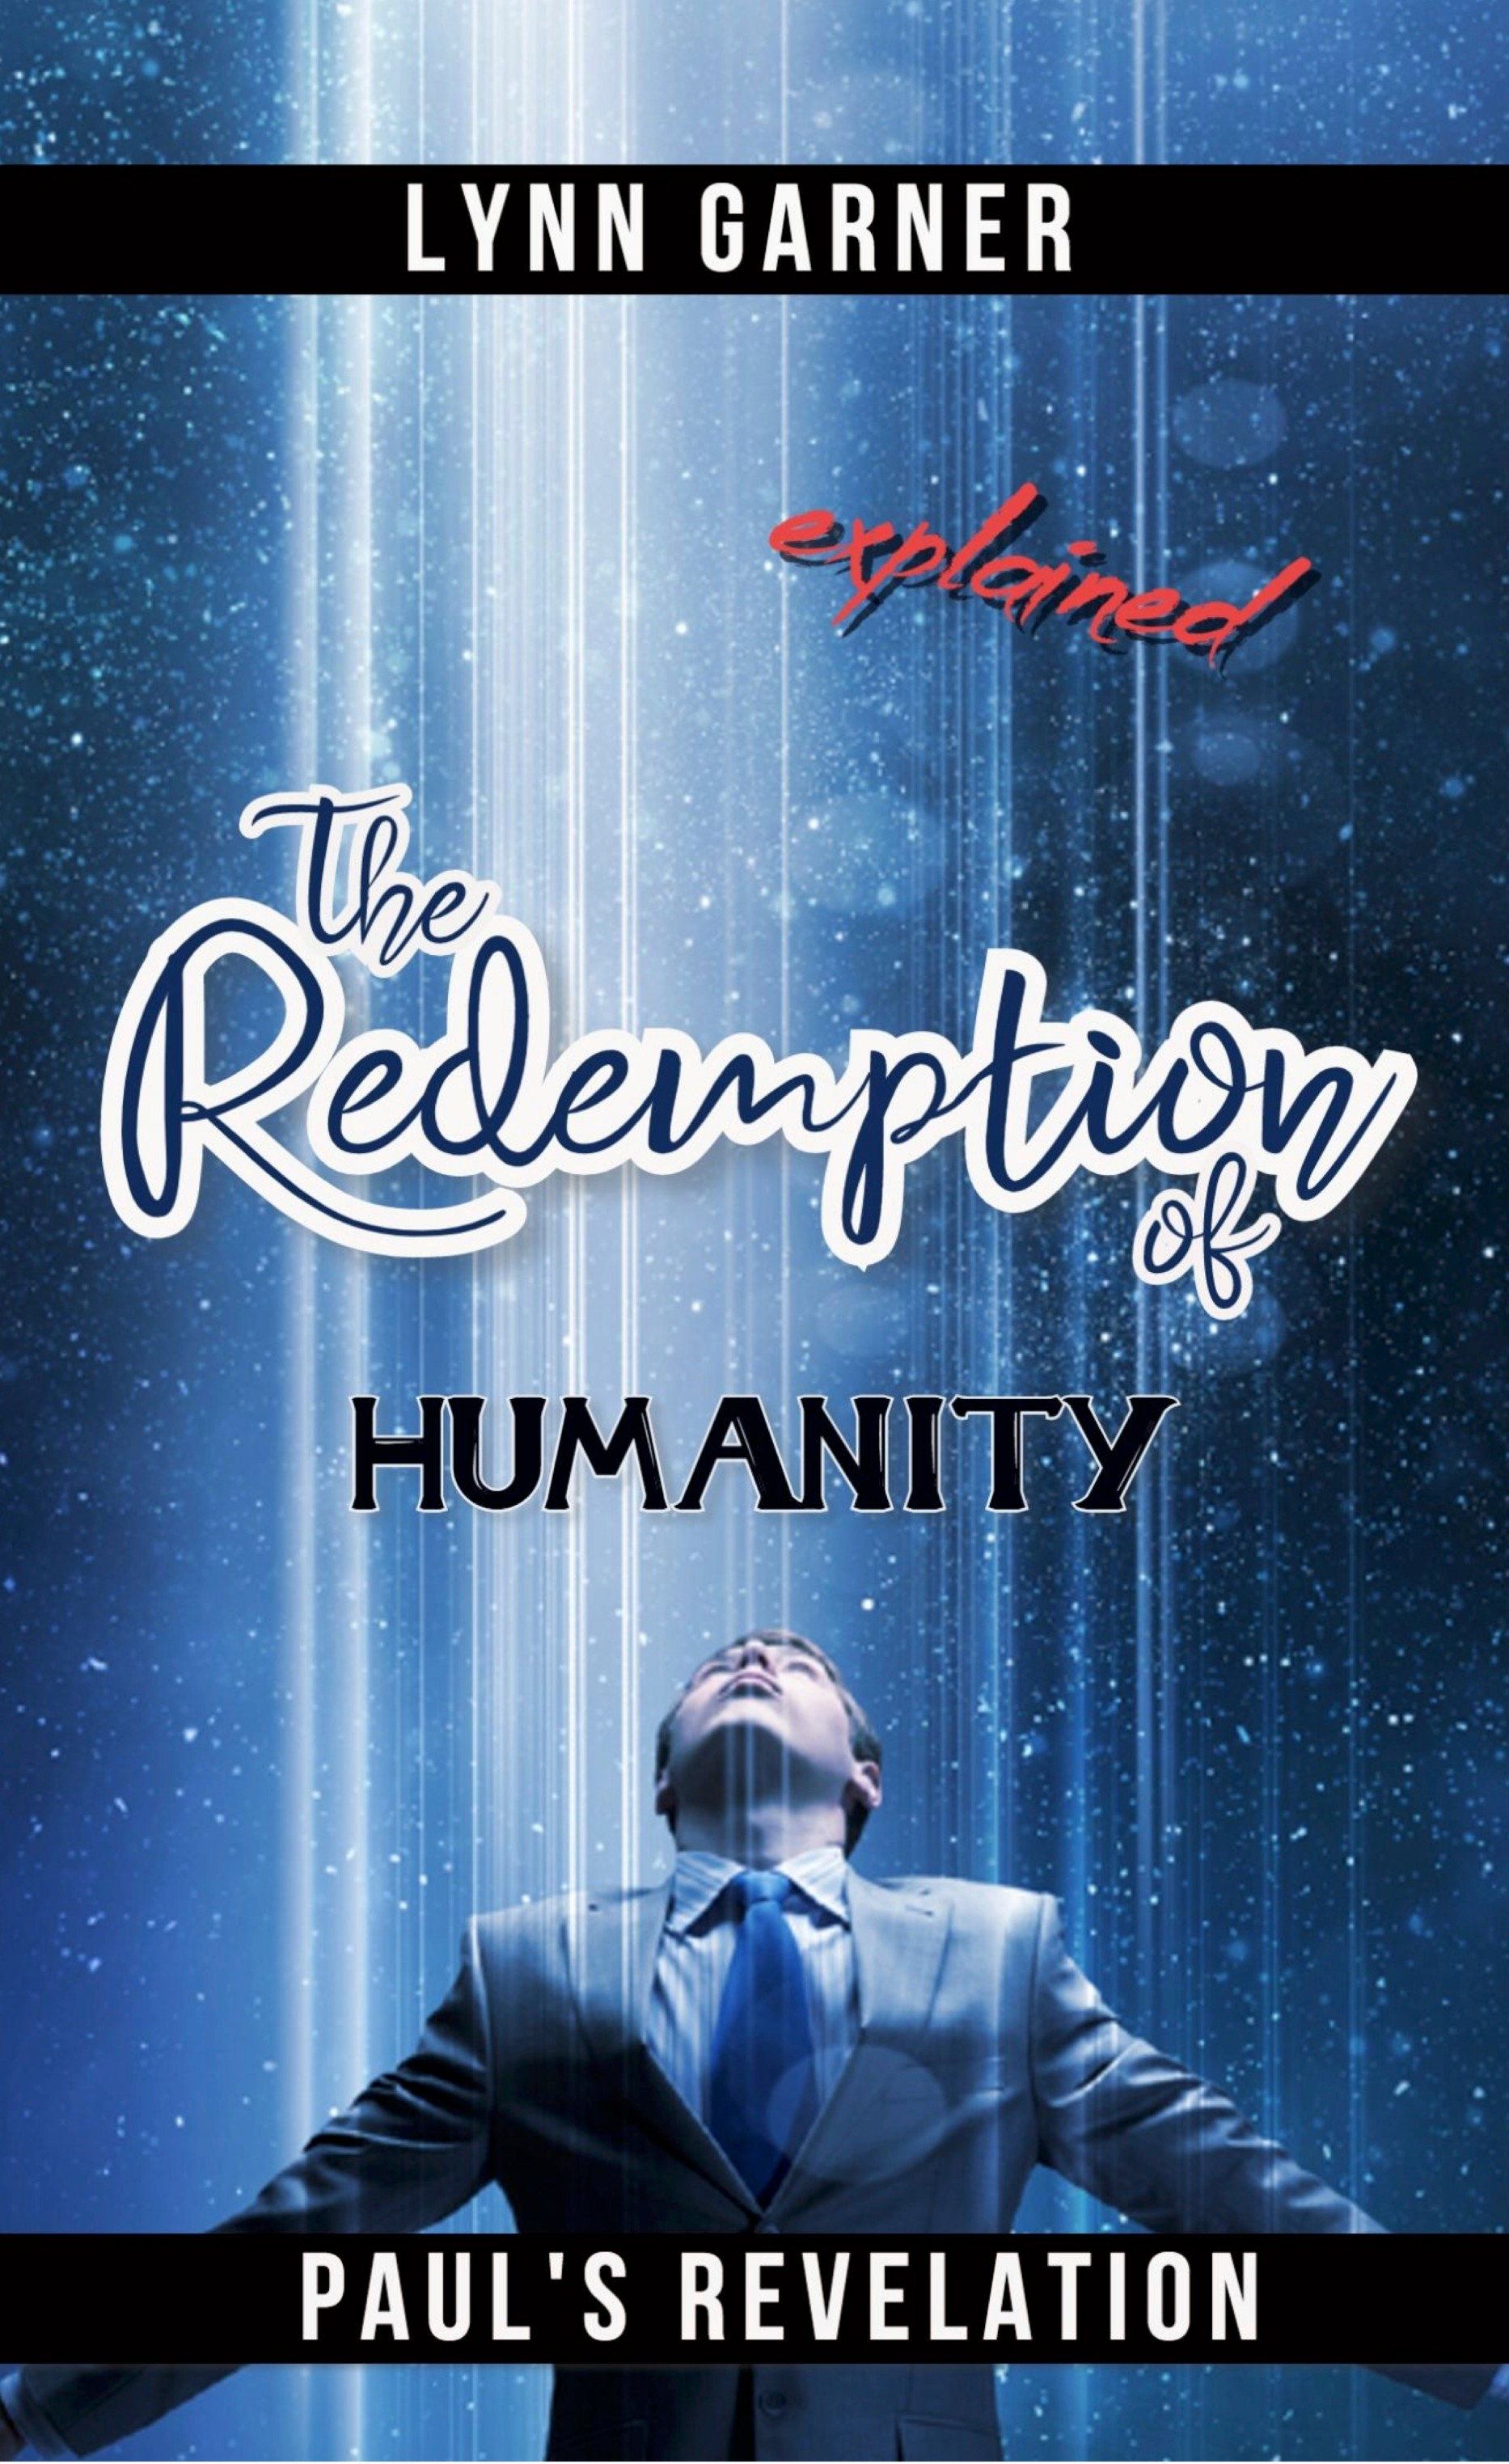 The redemption of humanity explained - By Lynn Garner